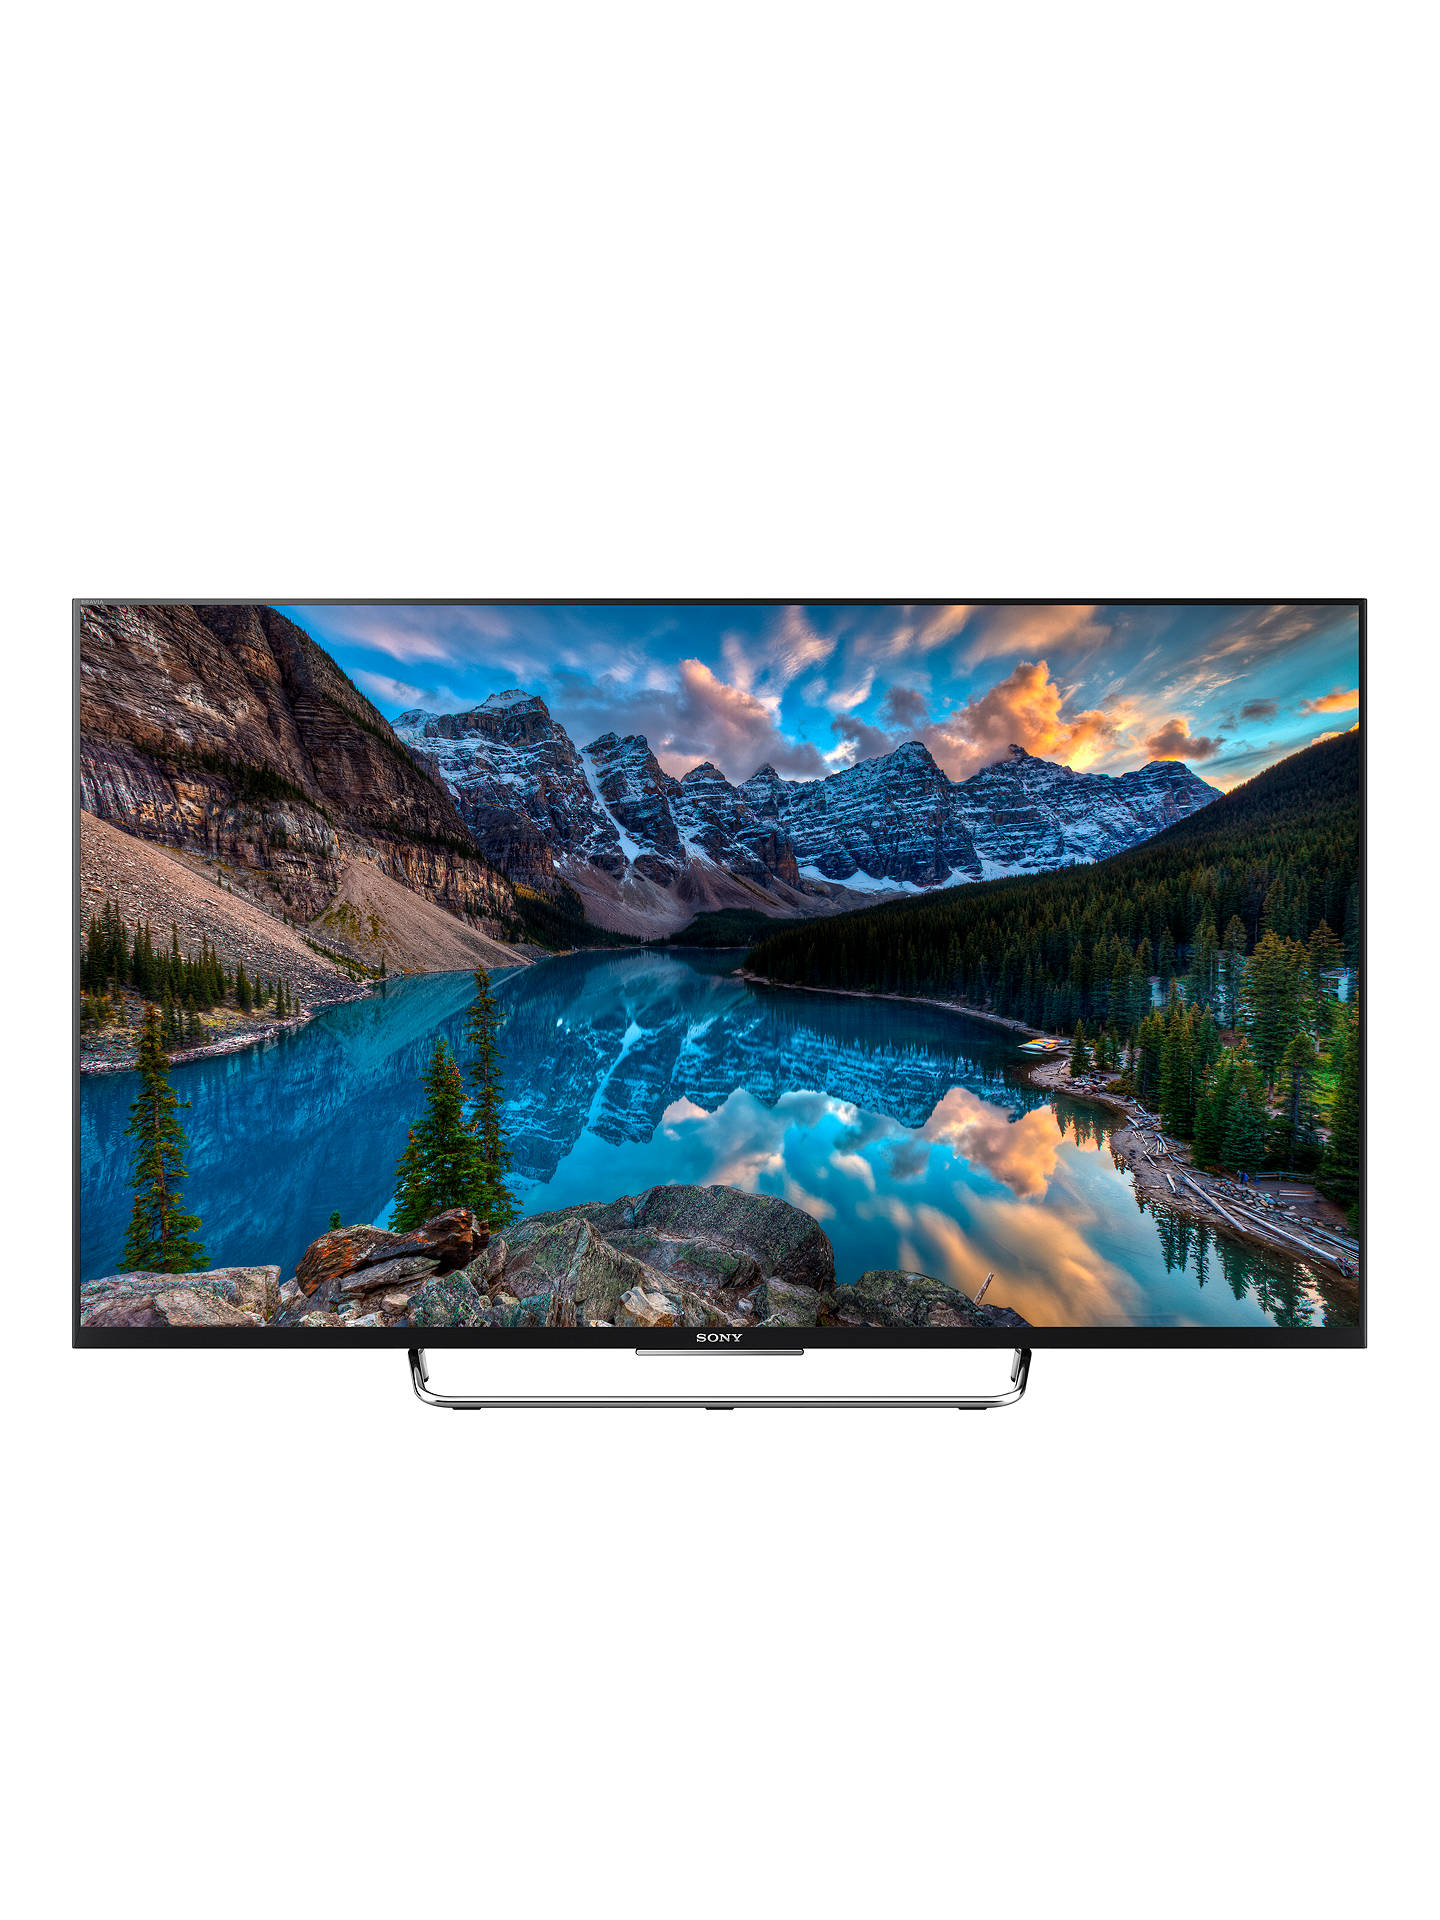 Sony Bravia KDL43W80 LED HD 1080p 3D Android TV, 43